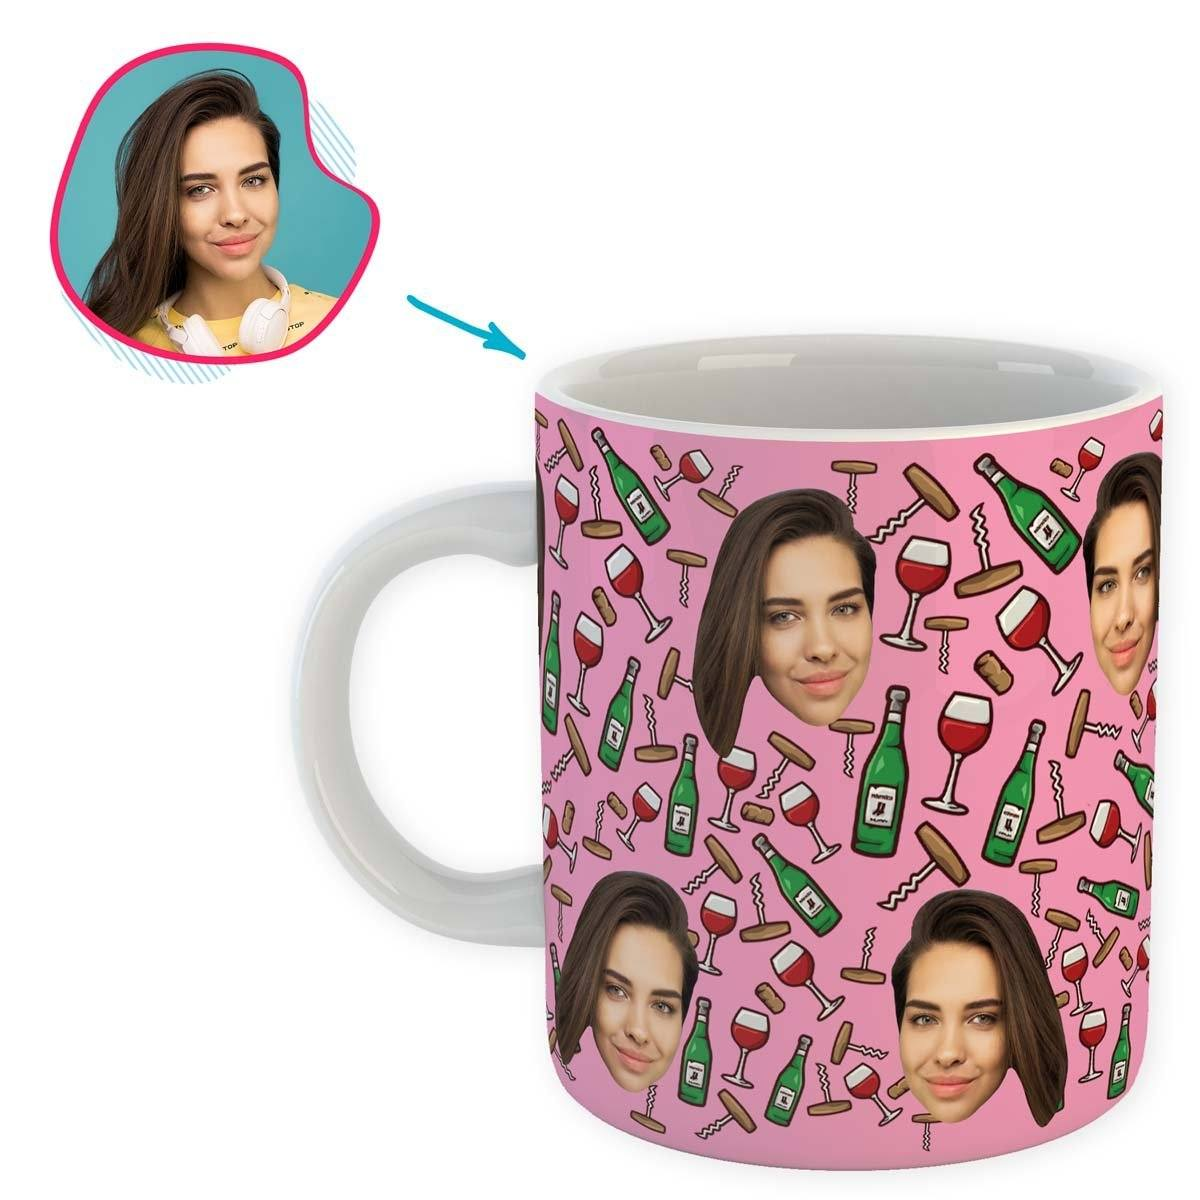 pink Wine mug personalized with photo of face printed on it